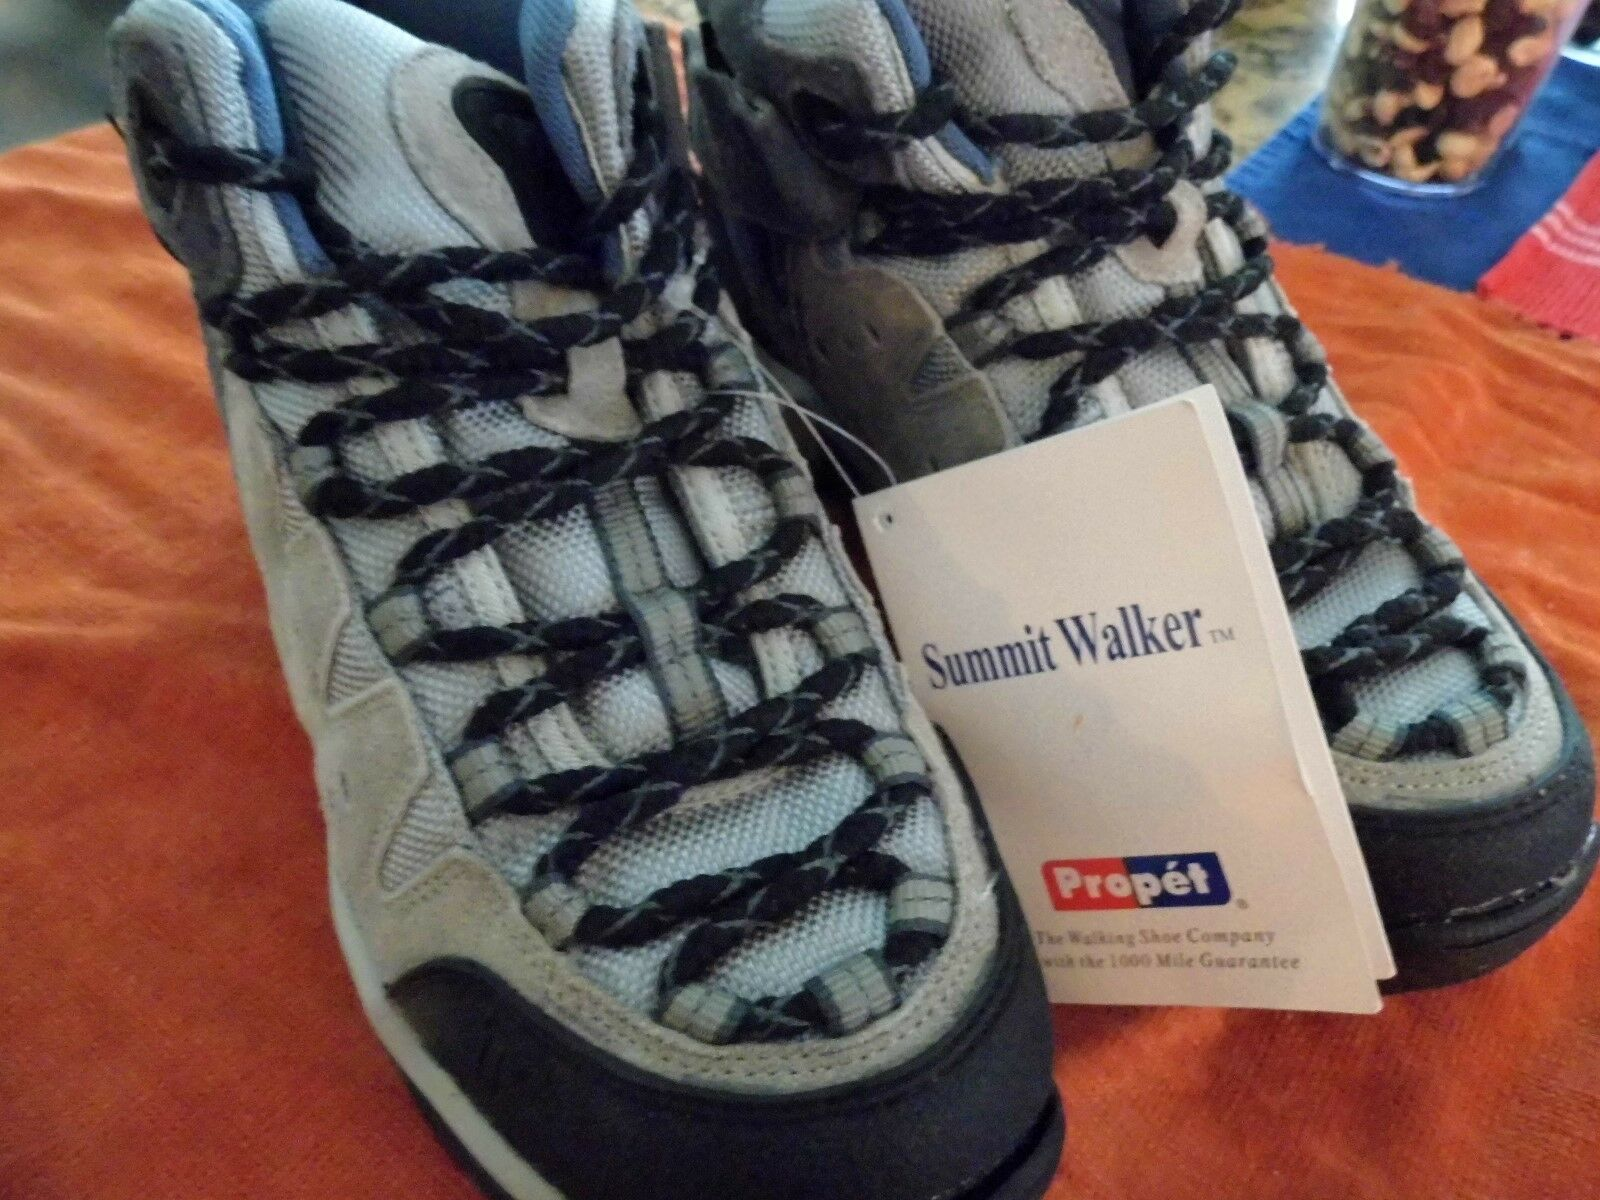 New Suede Propet Summit Walking Hiking shoes - Size 6